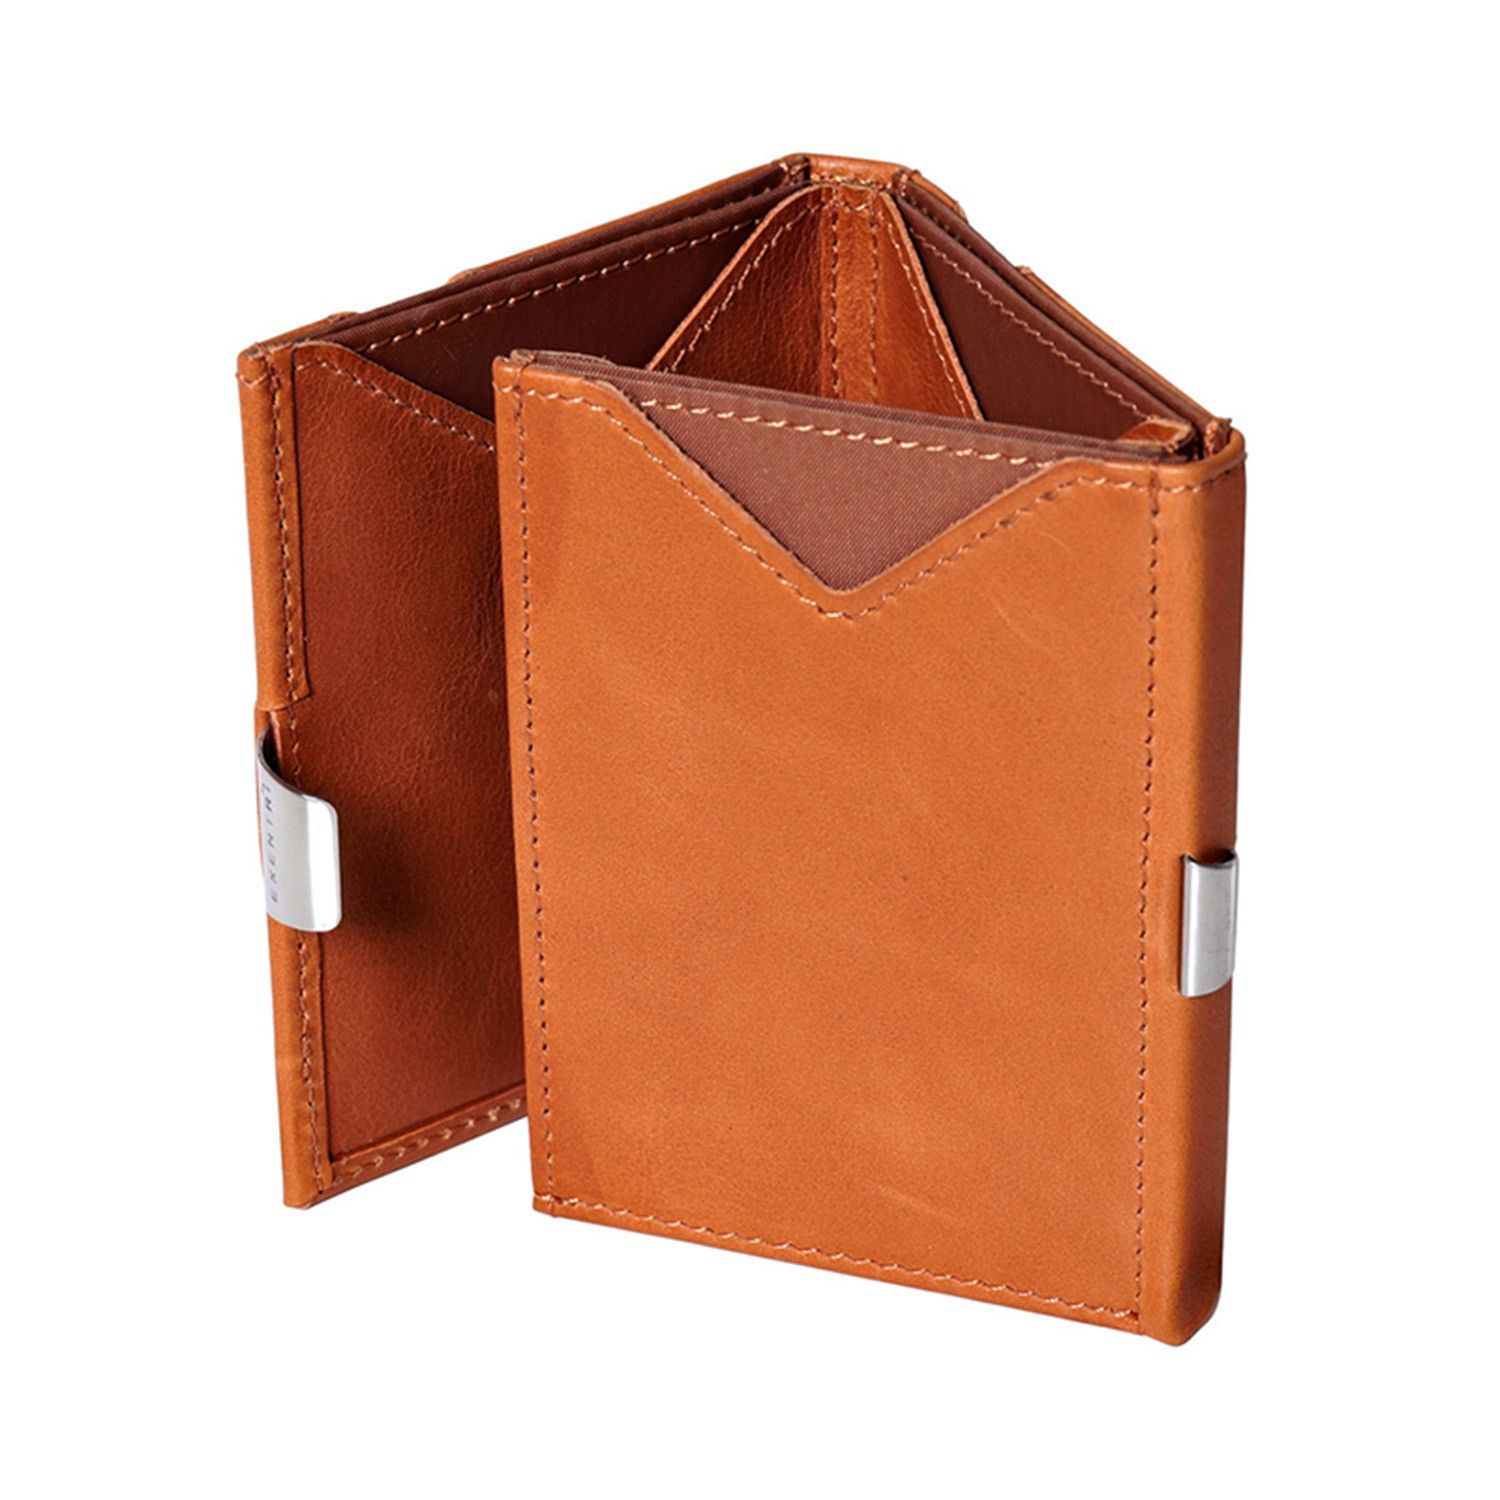 Leather Wallet, Wallet, Leather